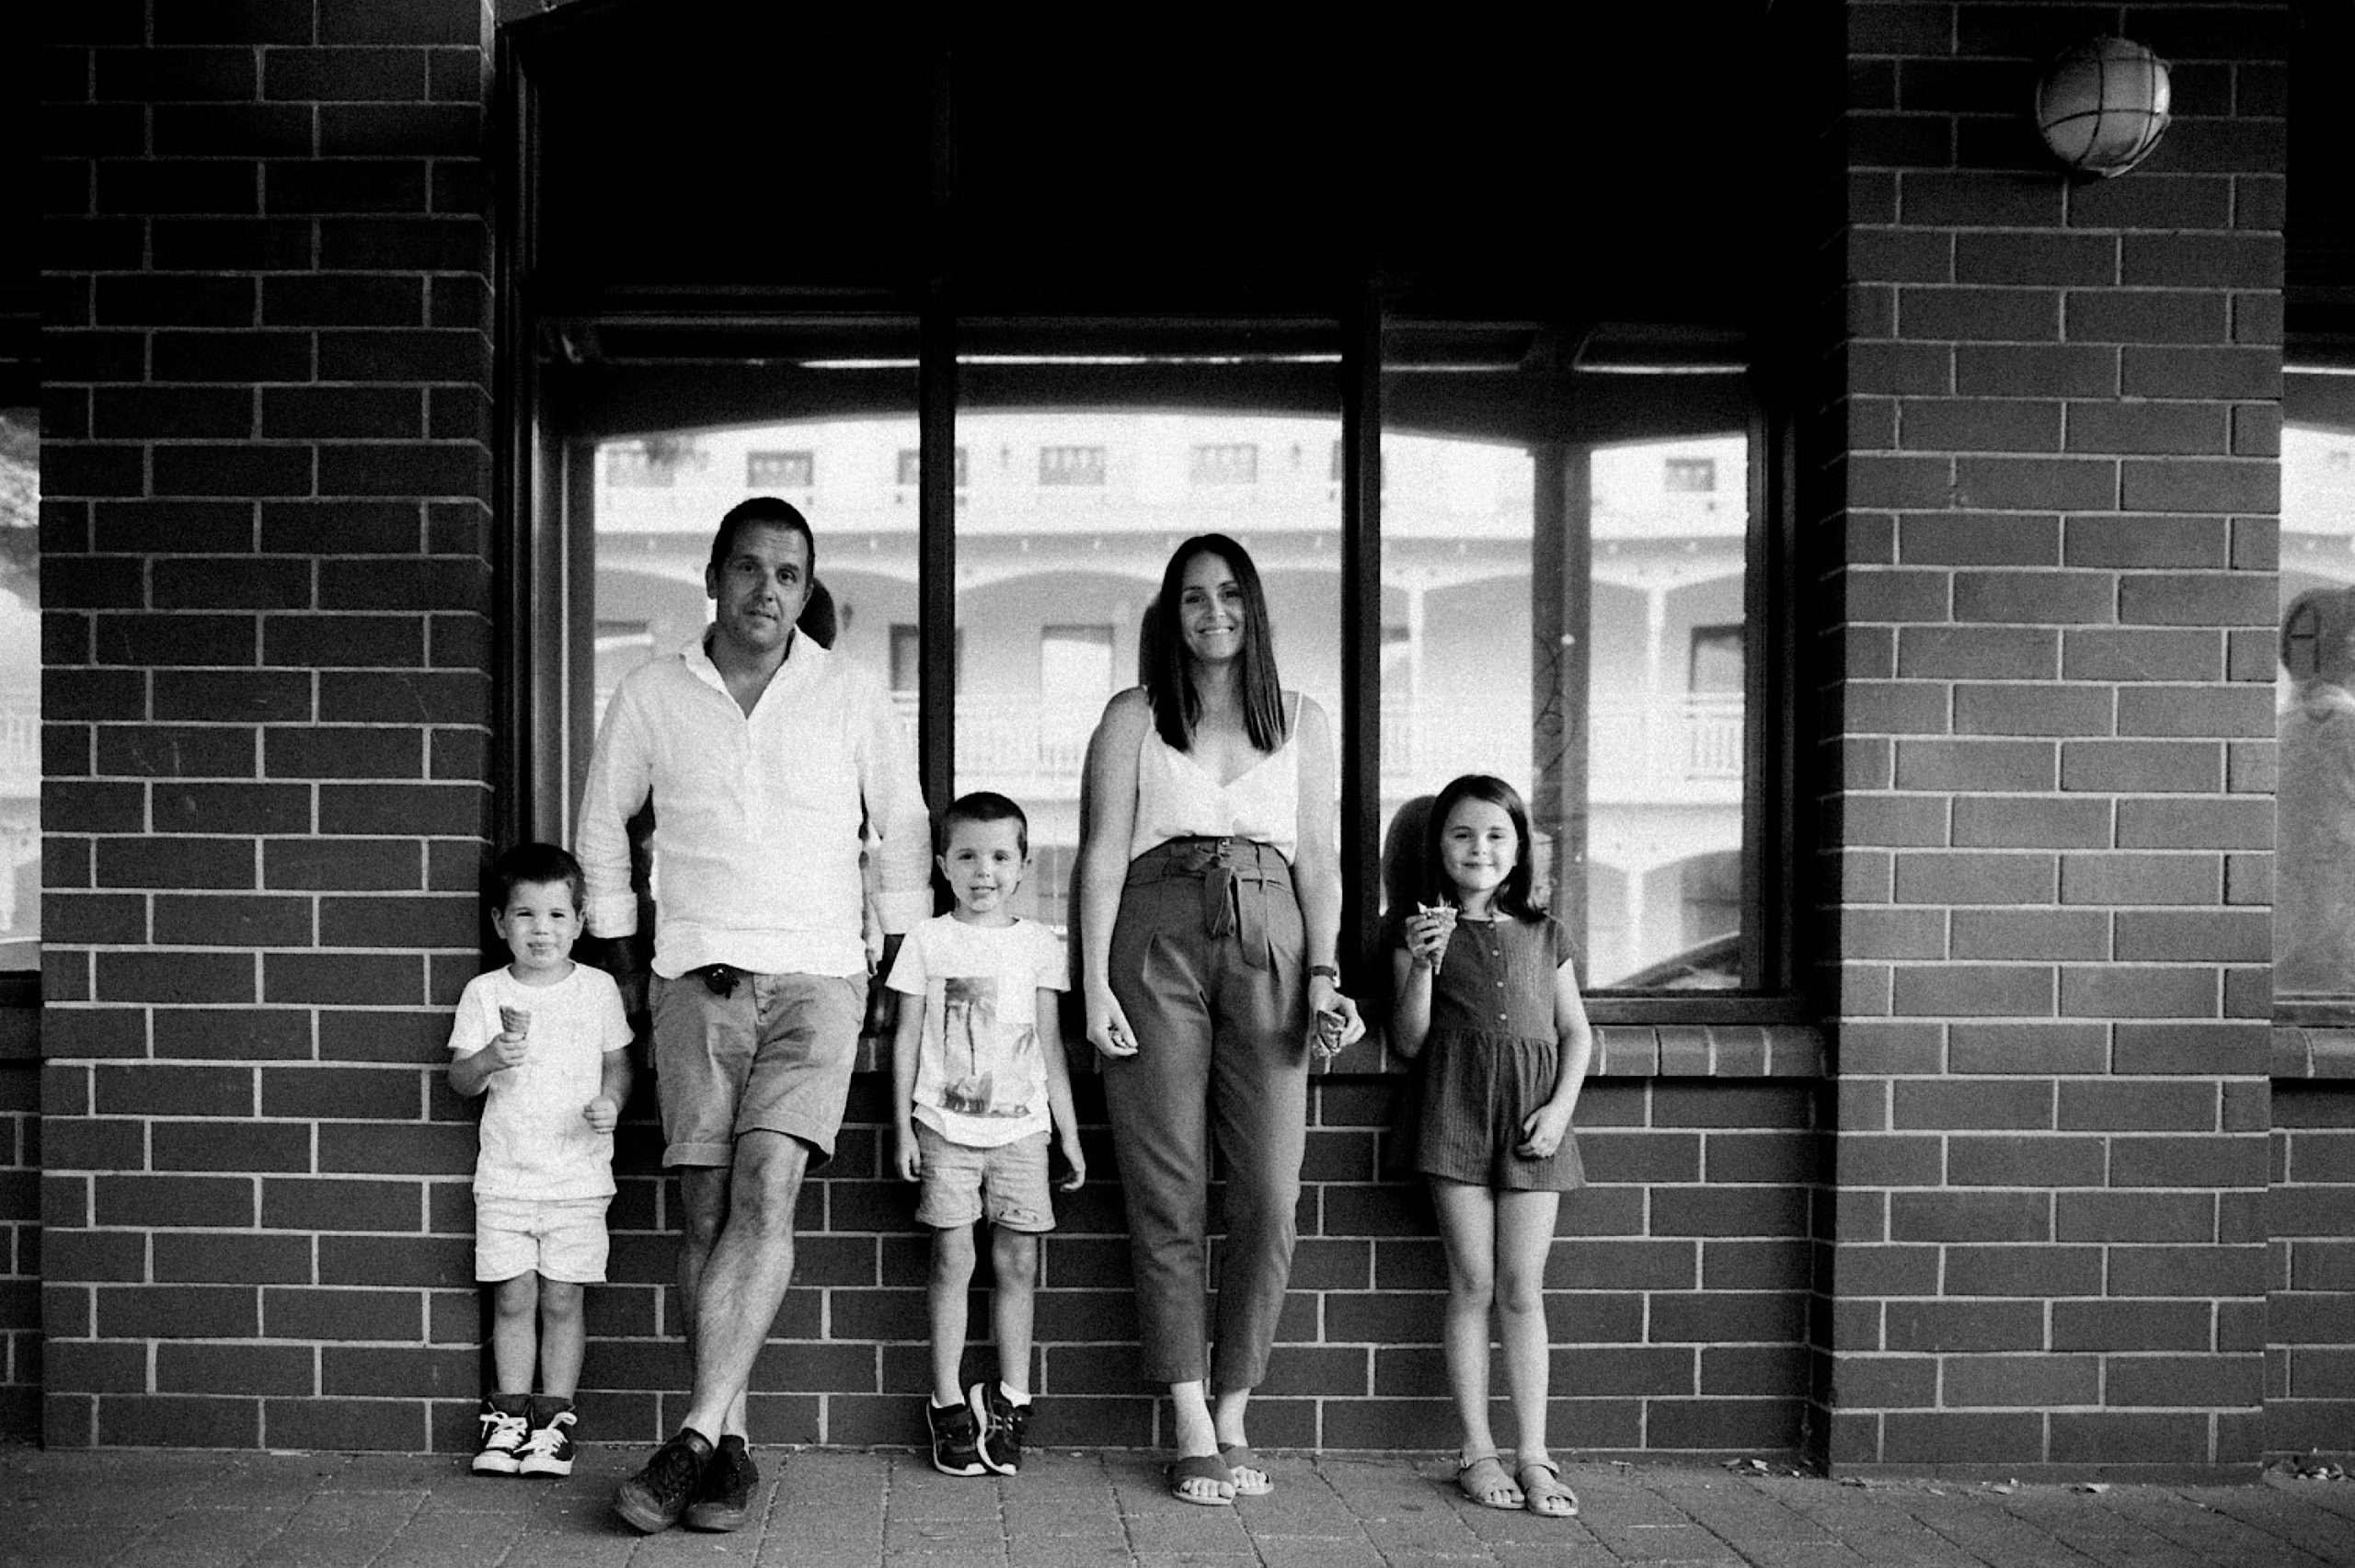 Black and white family portrait of a family of five standing, leaning against a building.